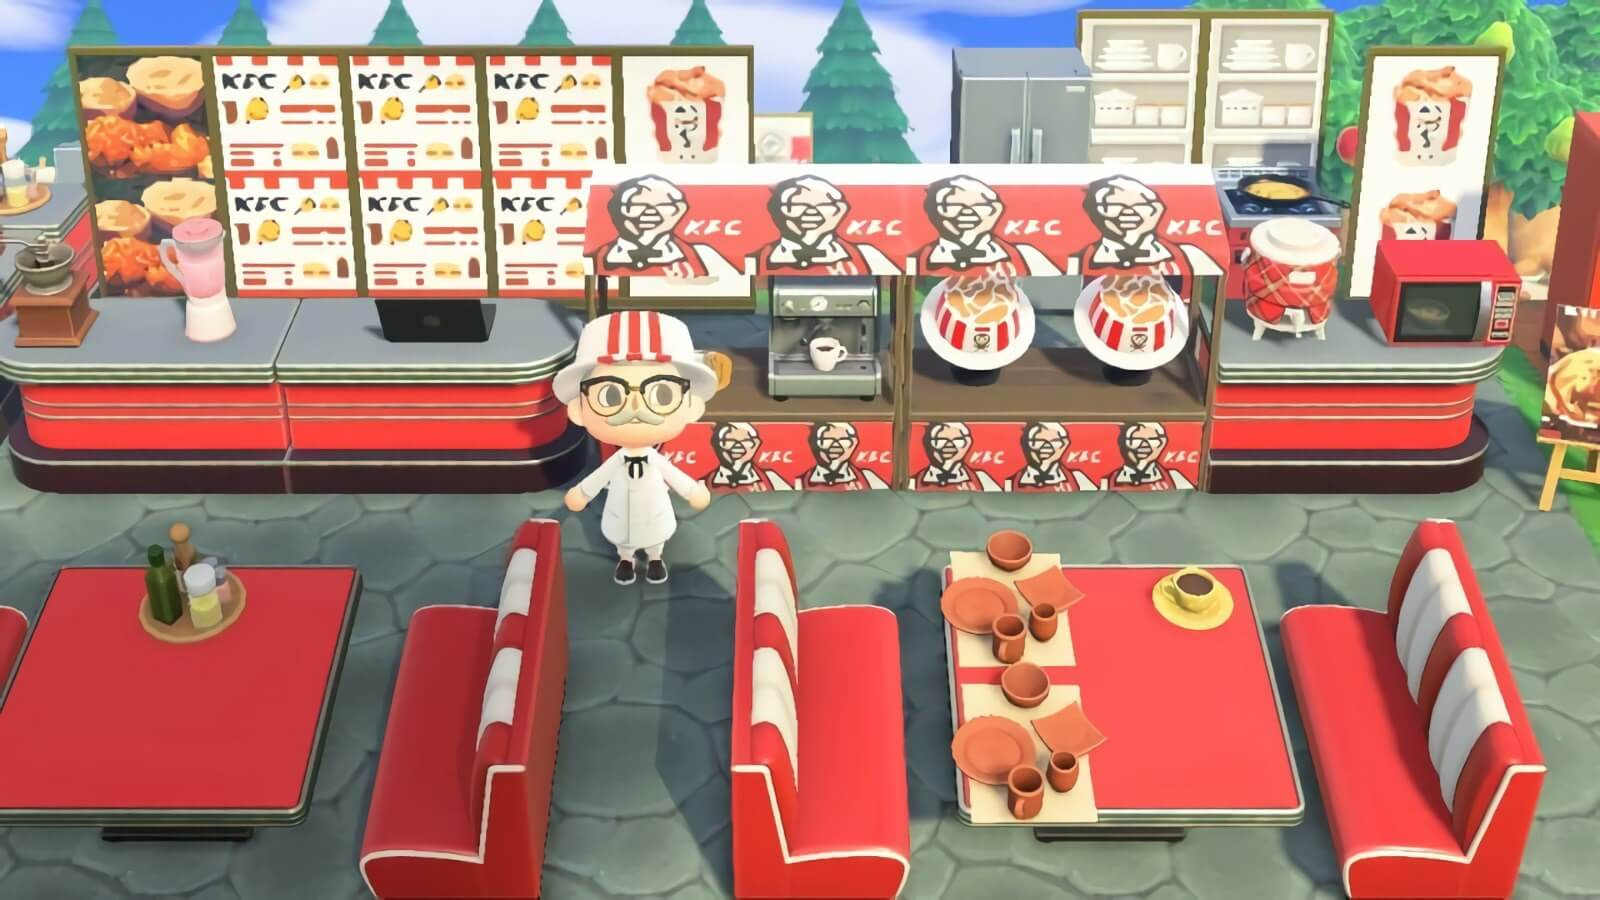 Kfc Now Has A Restaurant In Animal Crossing New Horizons